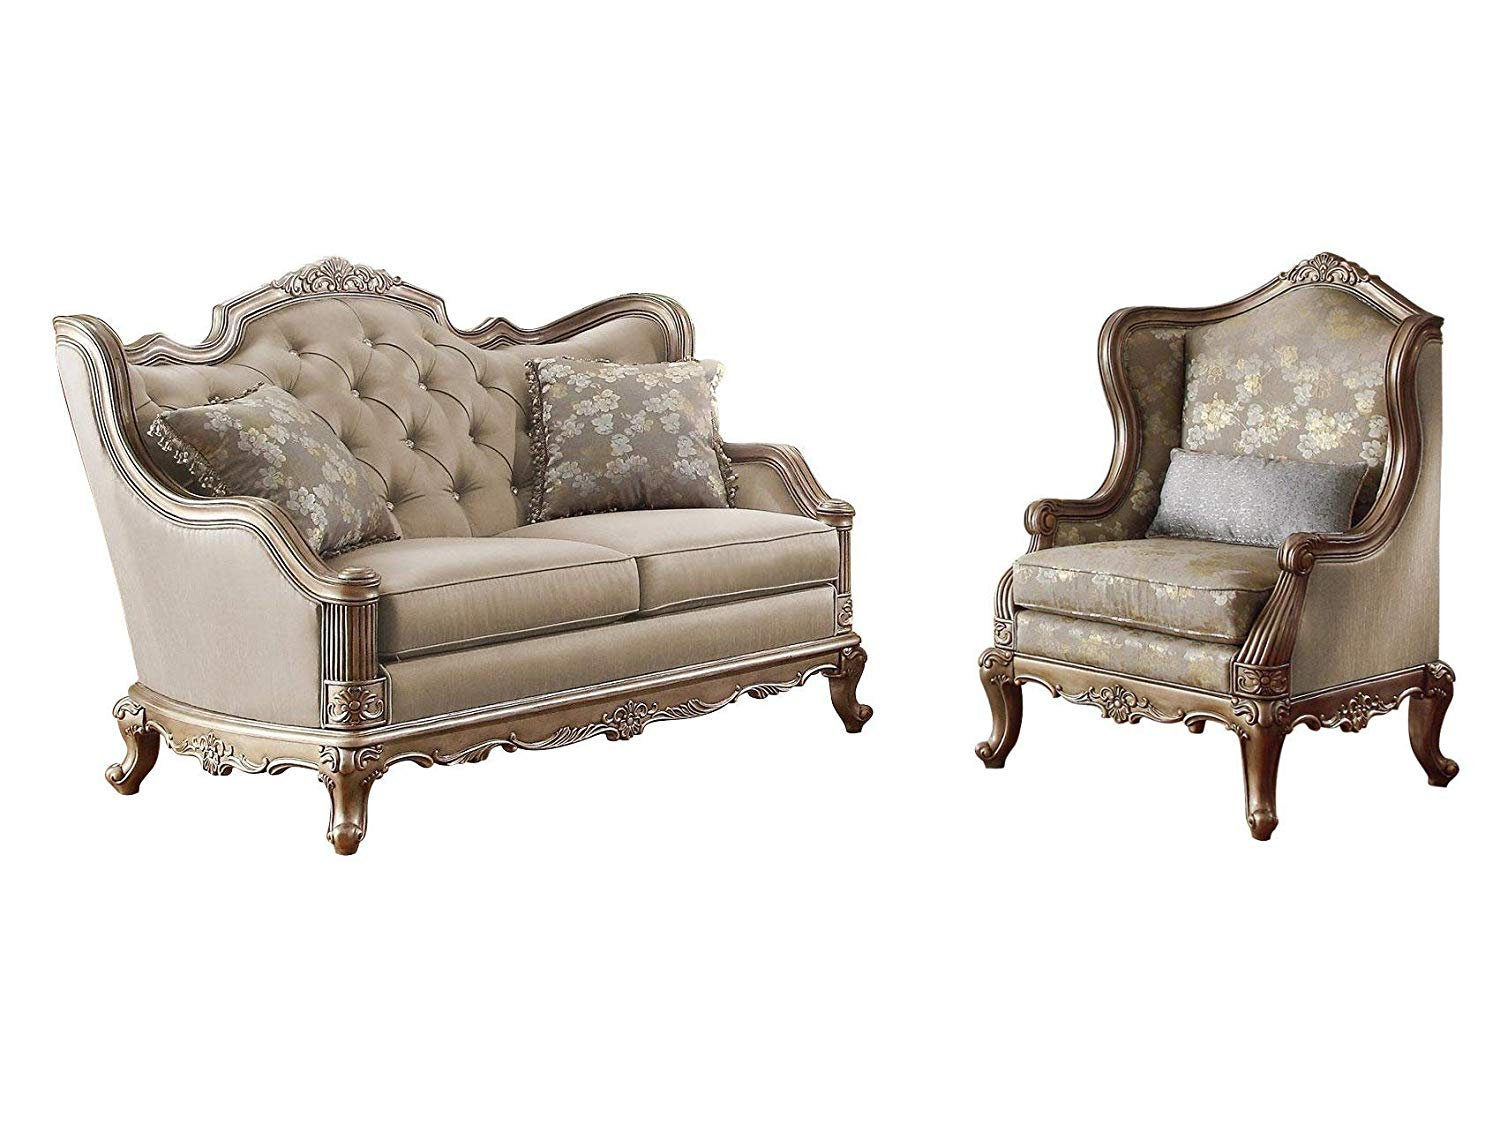 Fayanna Baroque 2PC Set Love Seat & Chair in Fabric - Twilight Taupe with Wood Trim